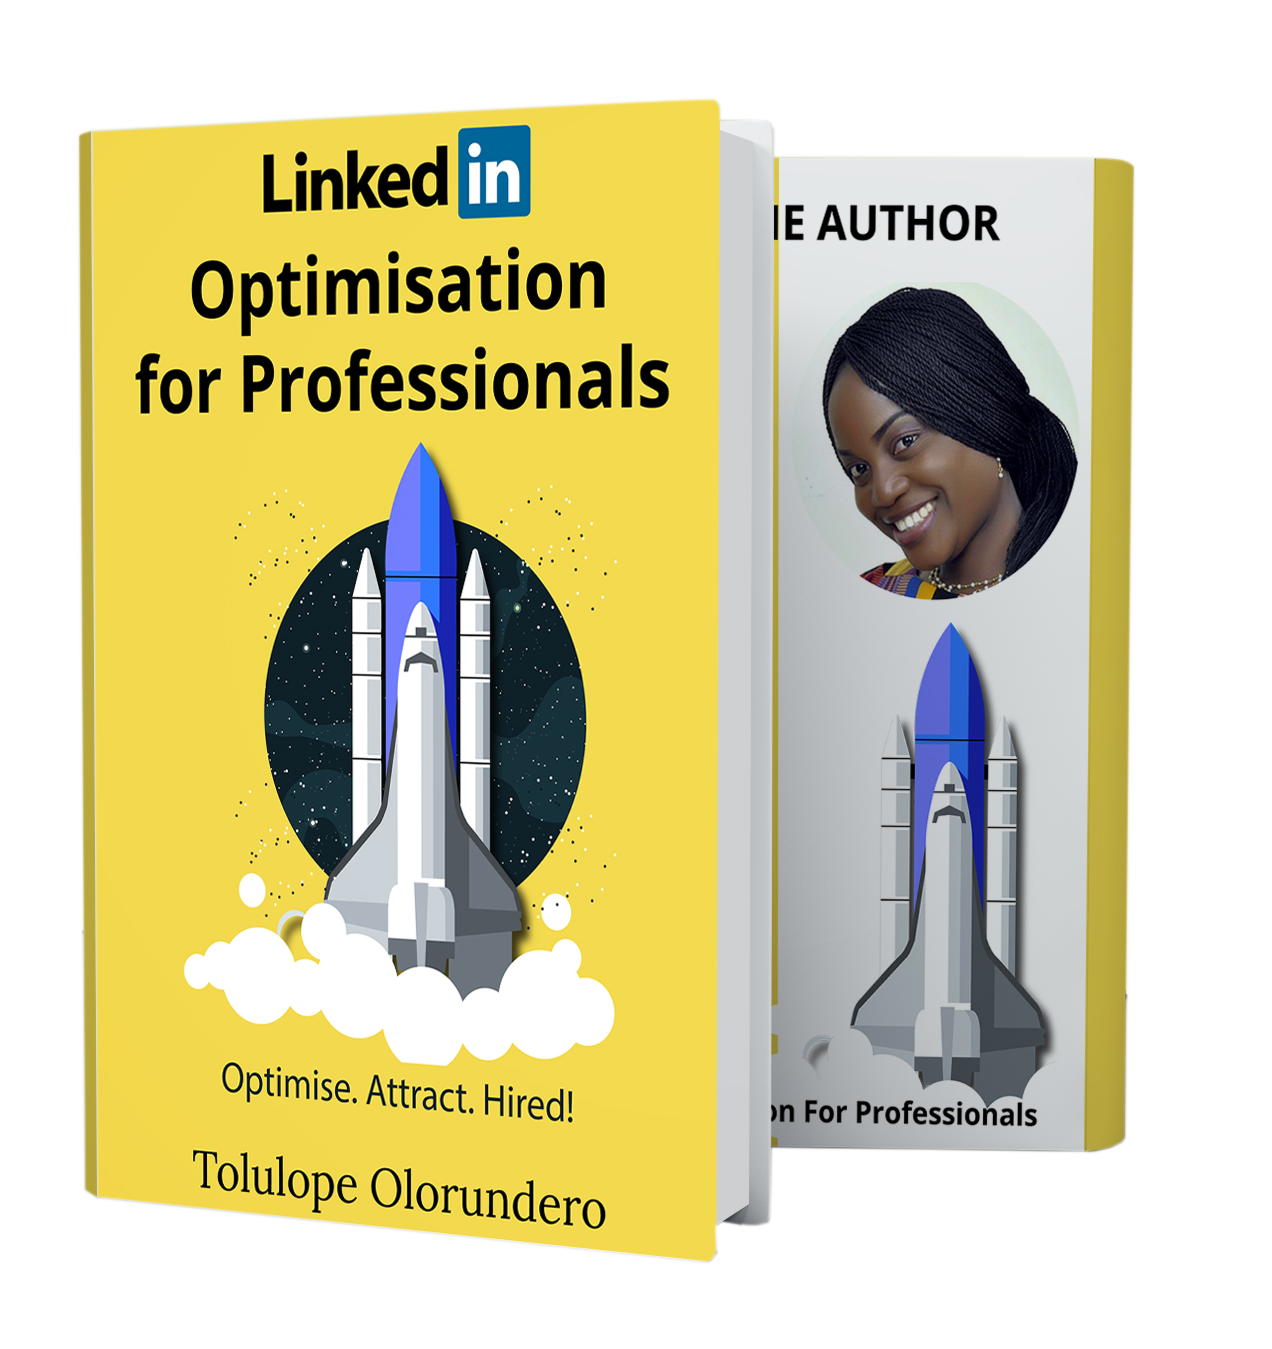 What Can LinkedIn Do For You?